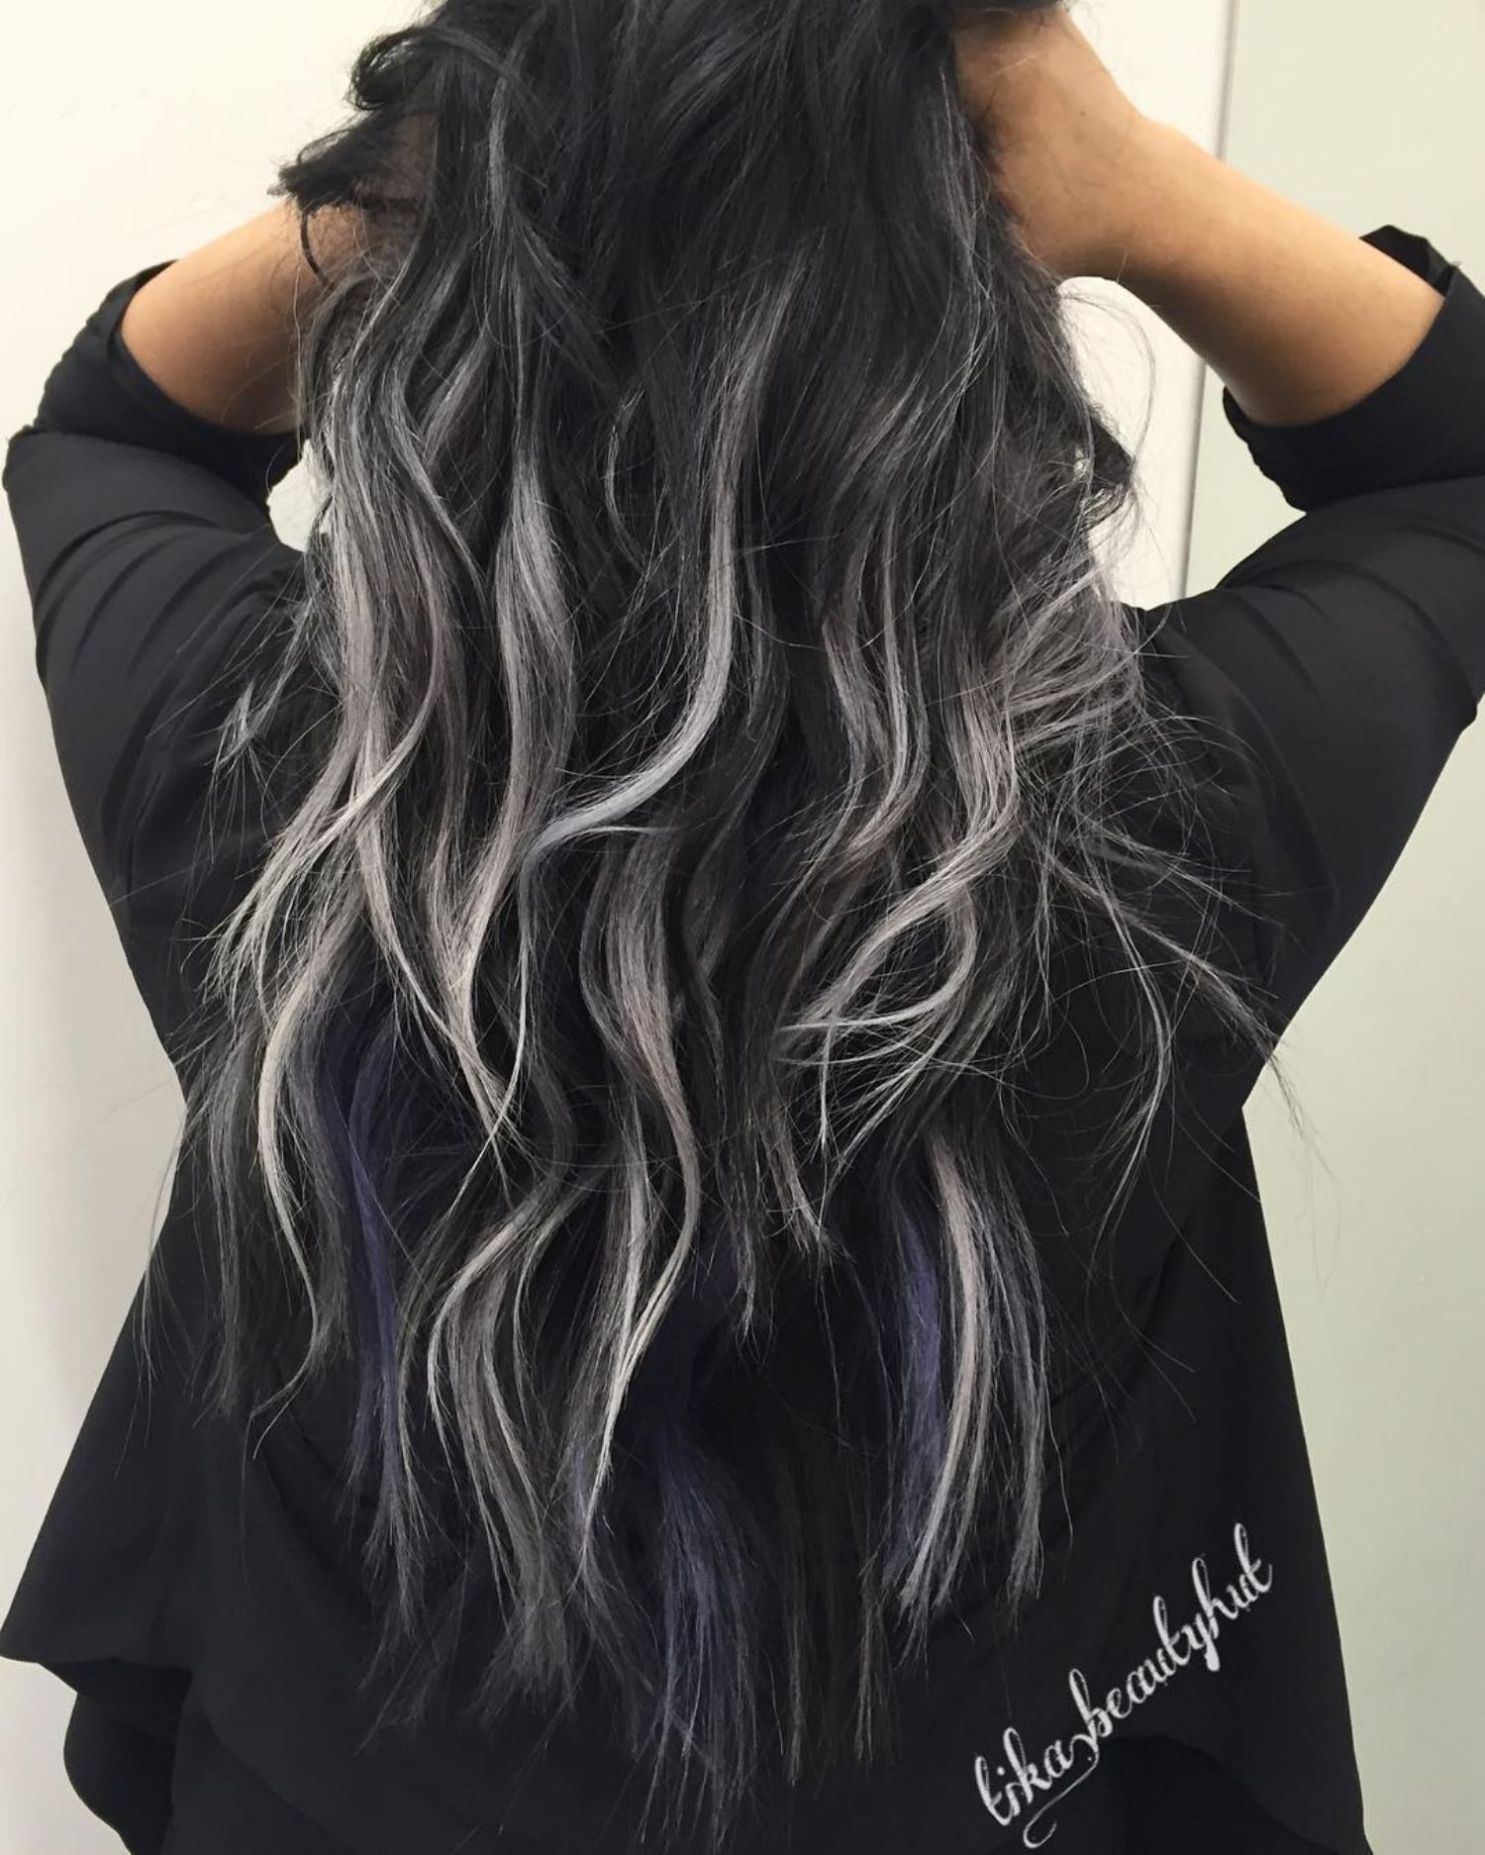 60 Shades Of Grey Silver And White Highlights For Eternal Youth Hair Color For Black Hair Black Hair With Highlights Hair Streaks